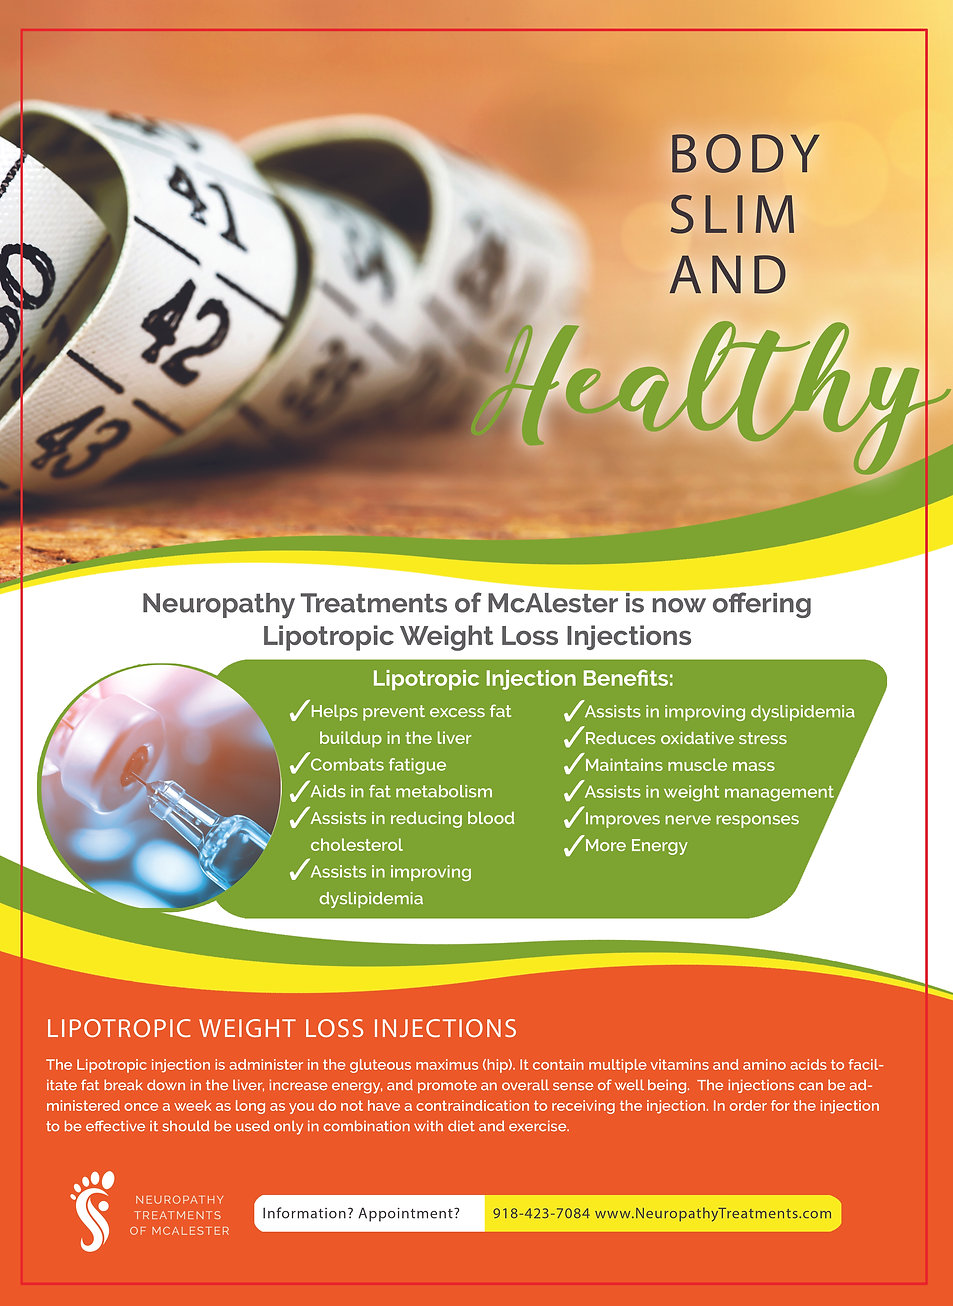 Weight Loss Injection Info.jpg